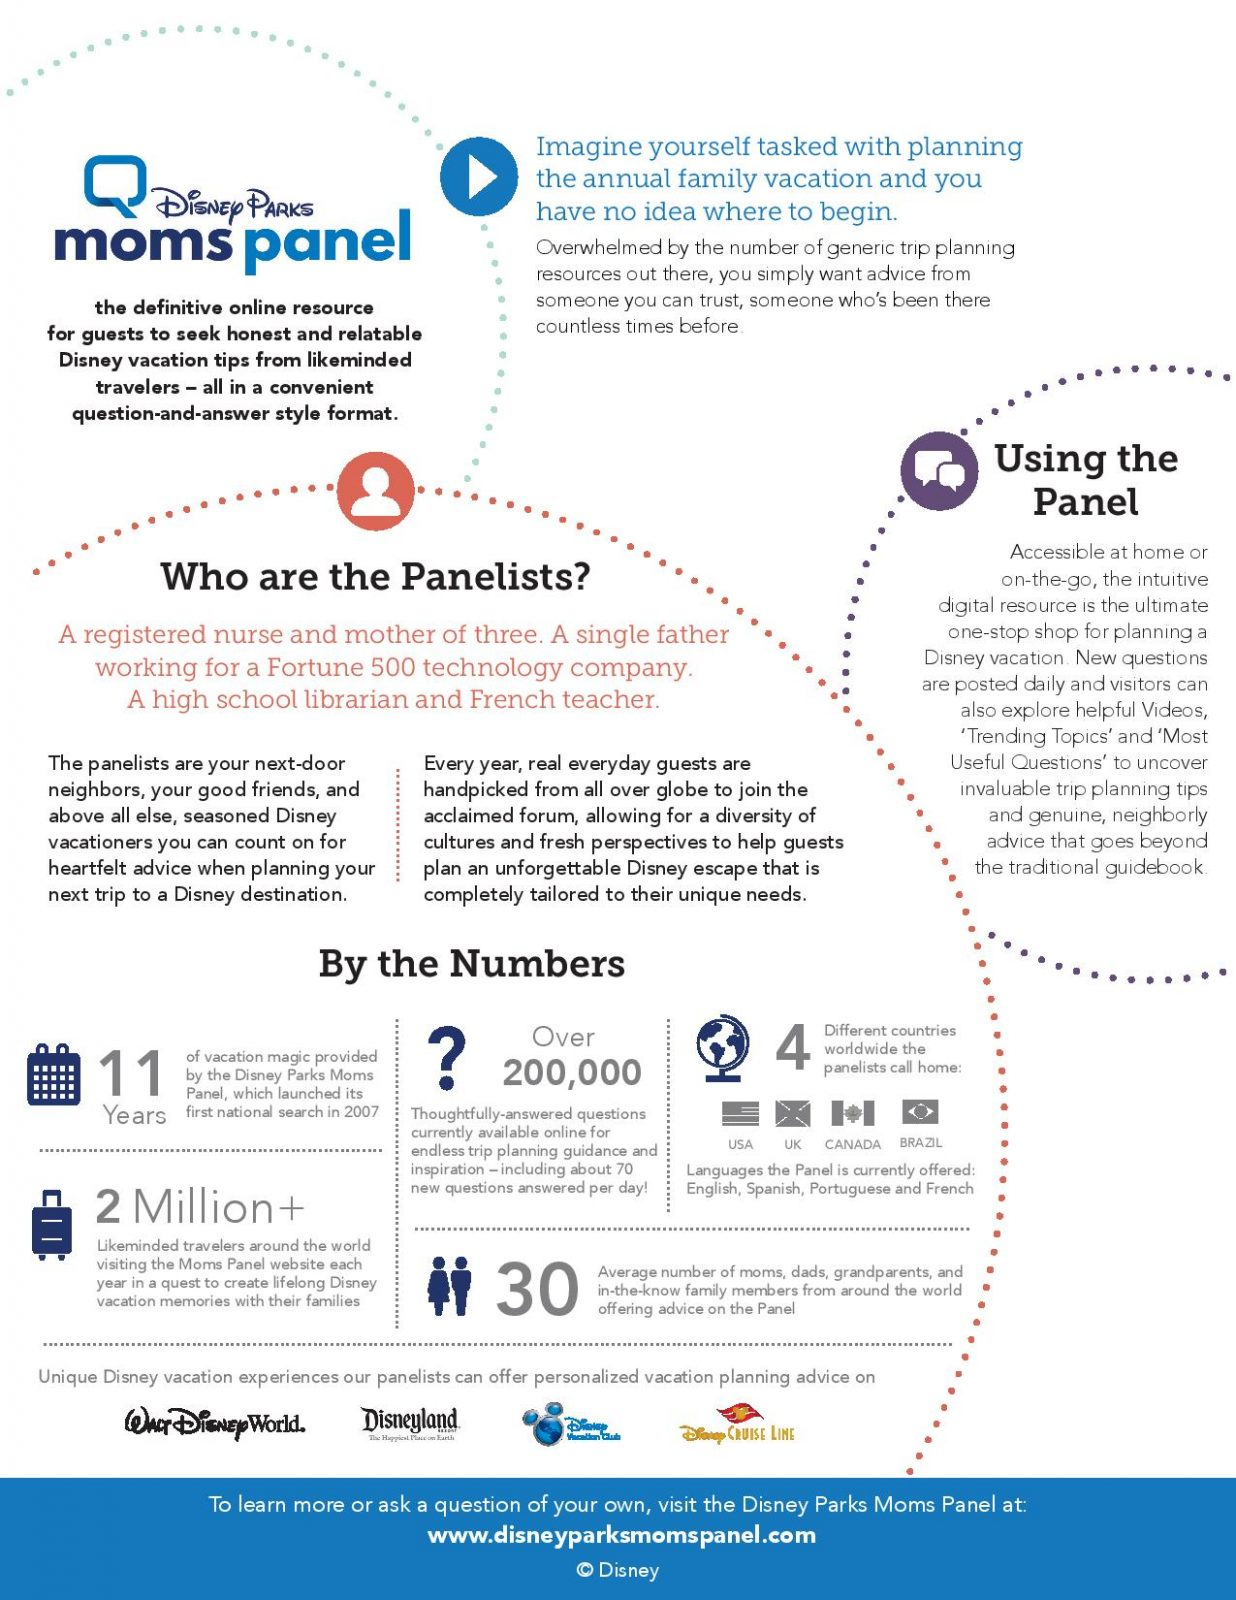 Disney Parks Moms Panel Fact Sheet